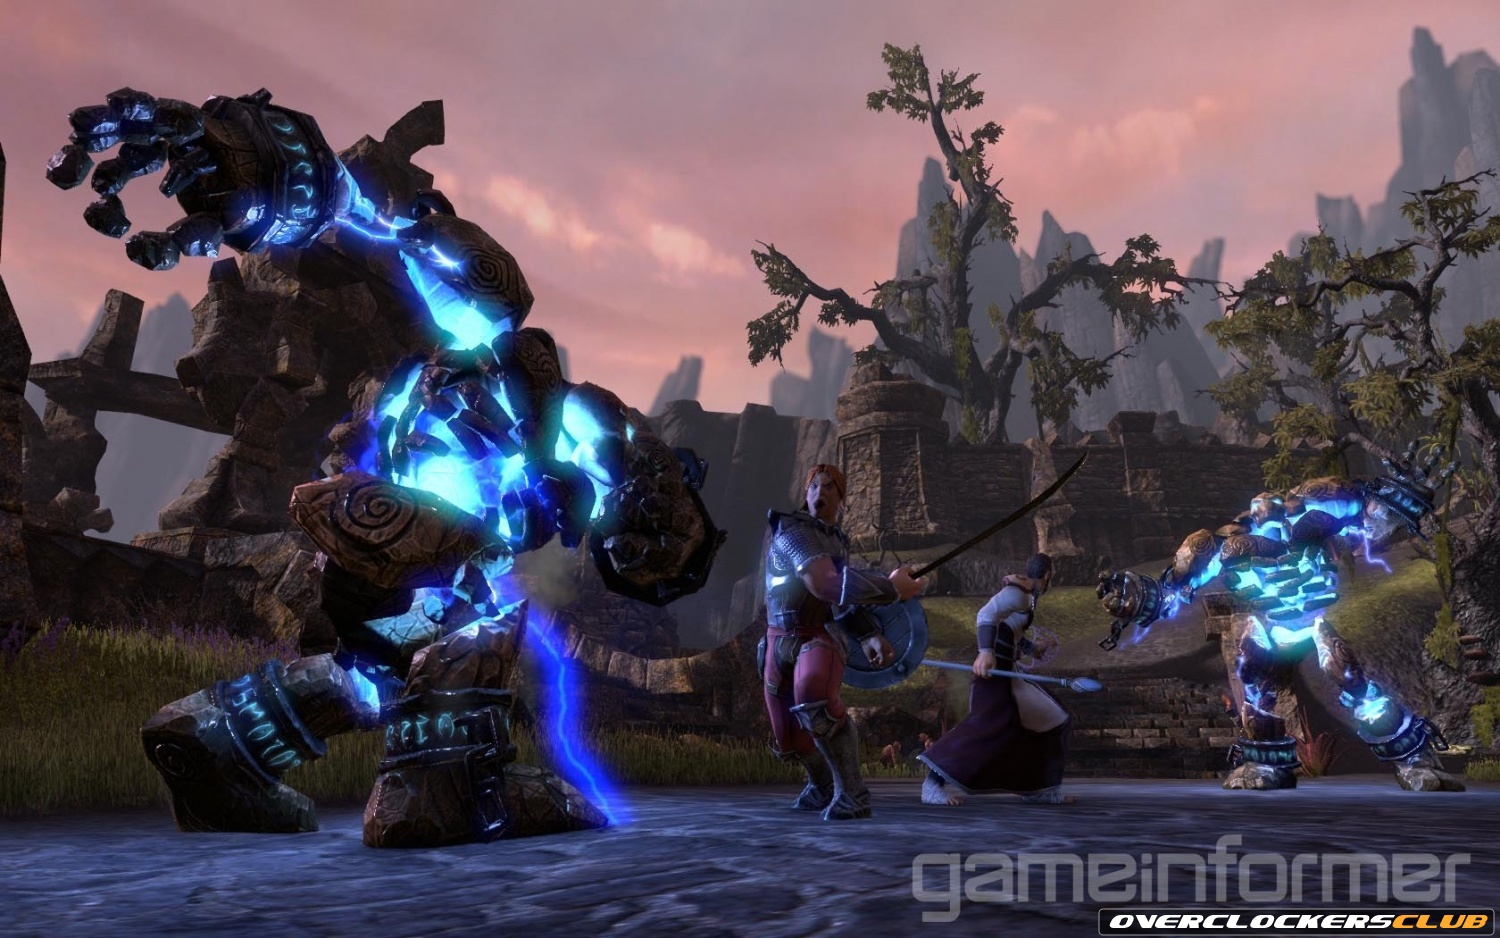 View The Elder Scrolls Online Announcement Trailer